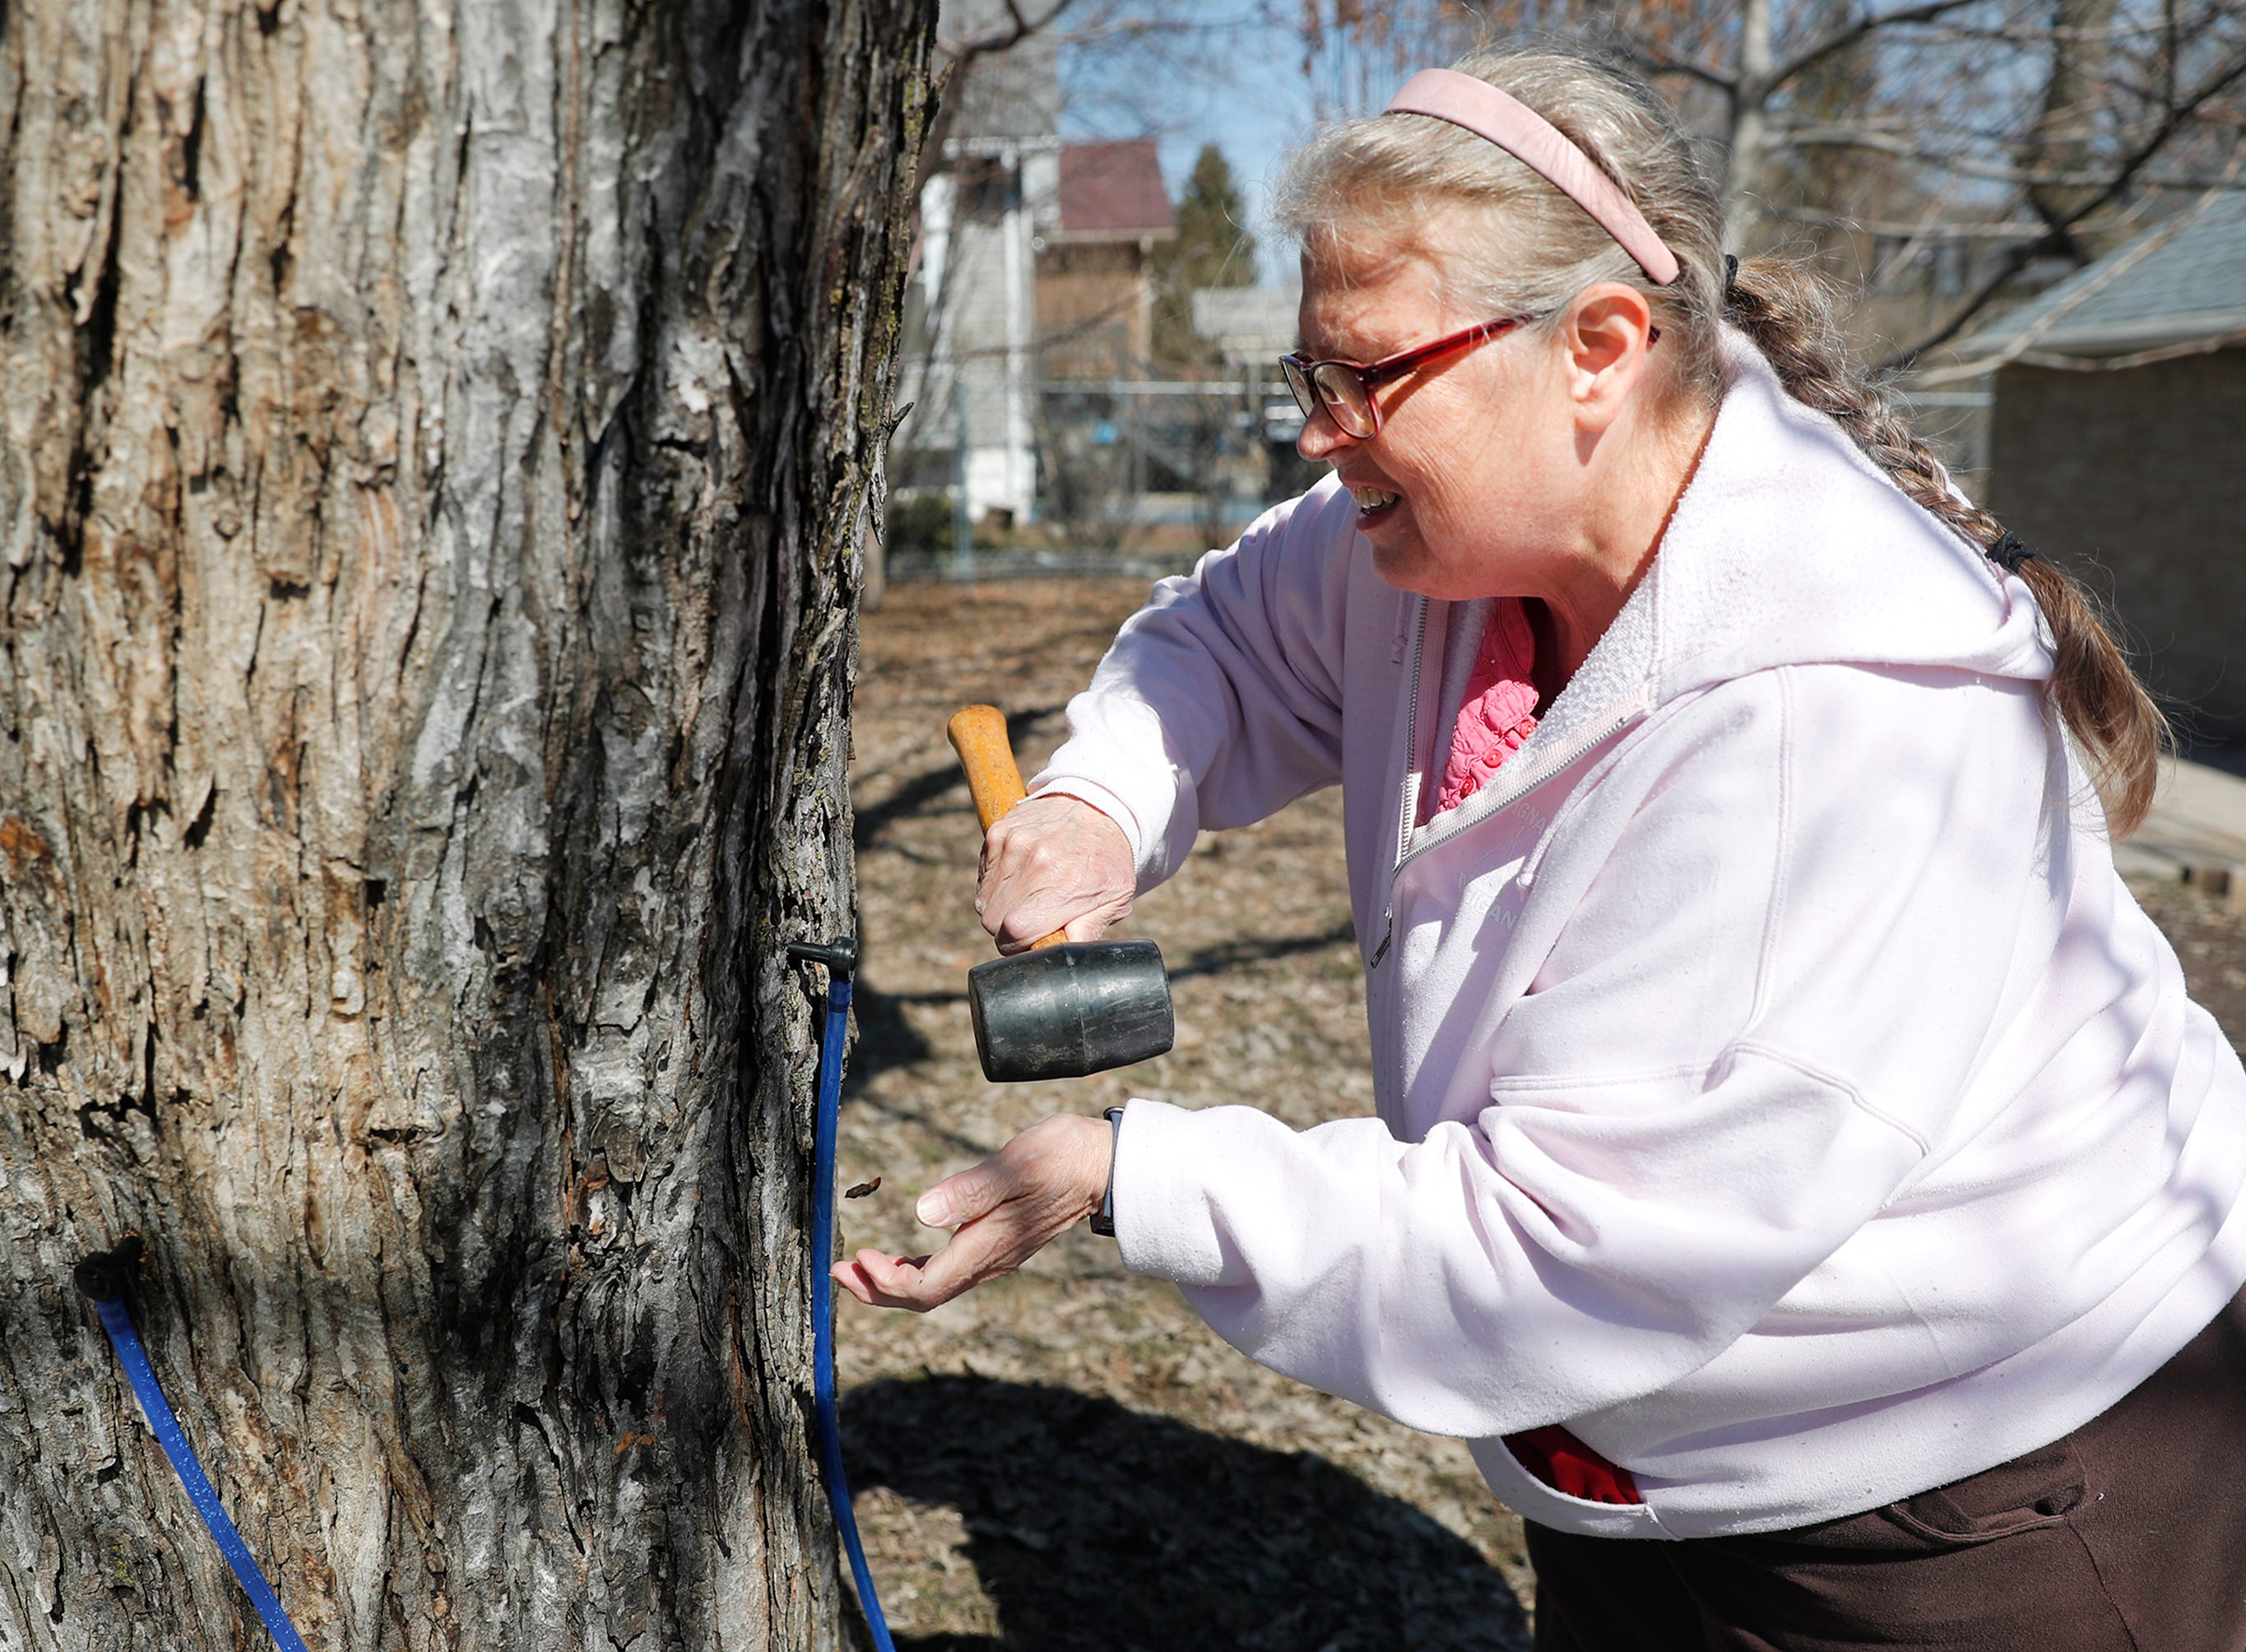 Paula Rothe, of Oshkosh, hammers in one of nine taps into three trees on her property for syrup with her husband Tuesday, March 26, 2019, in Oshkosh, Wis. Danny Damiani/USA TODAY NETWORK-Wisconsin